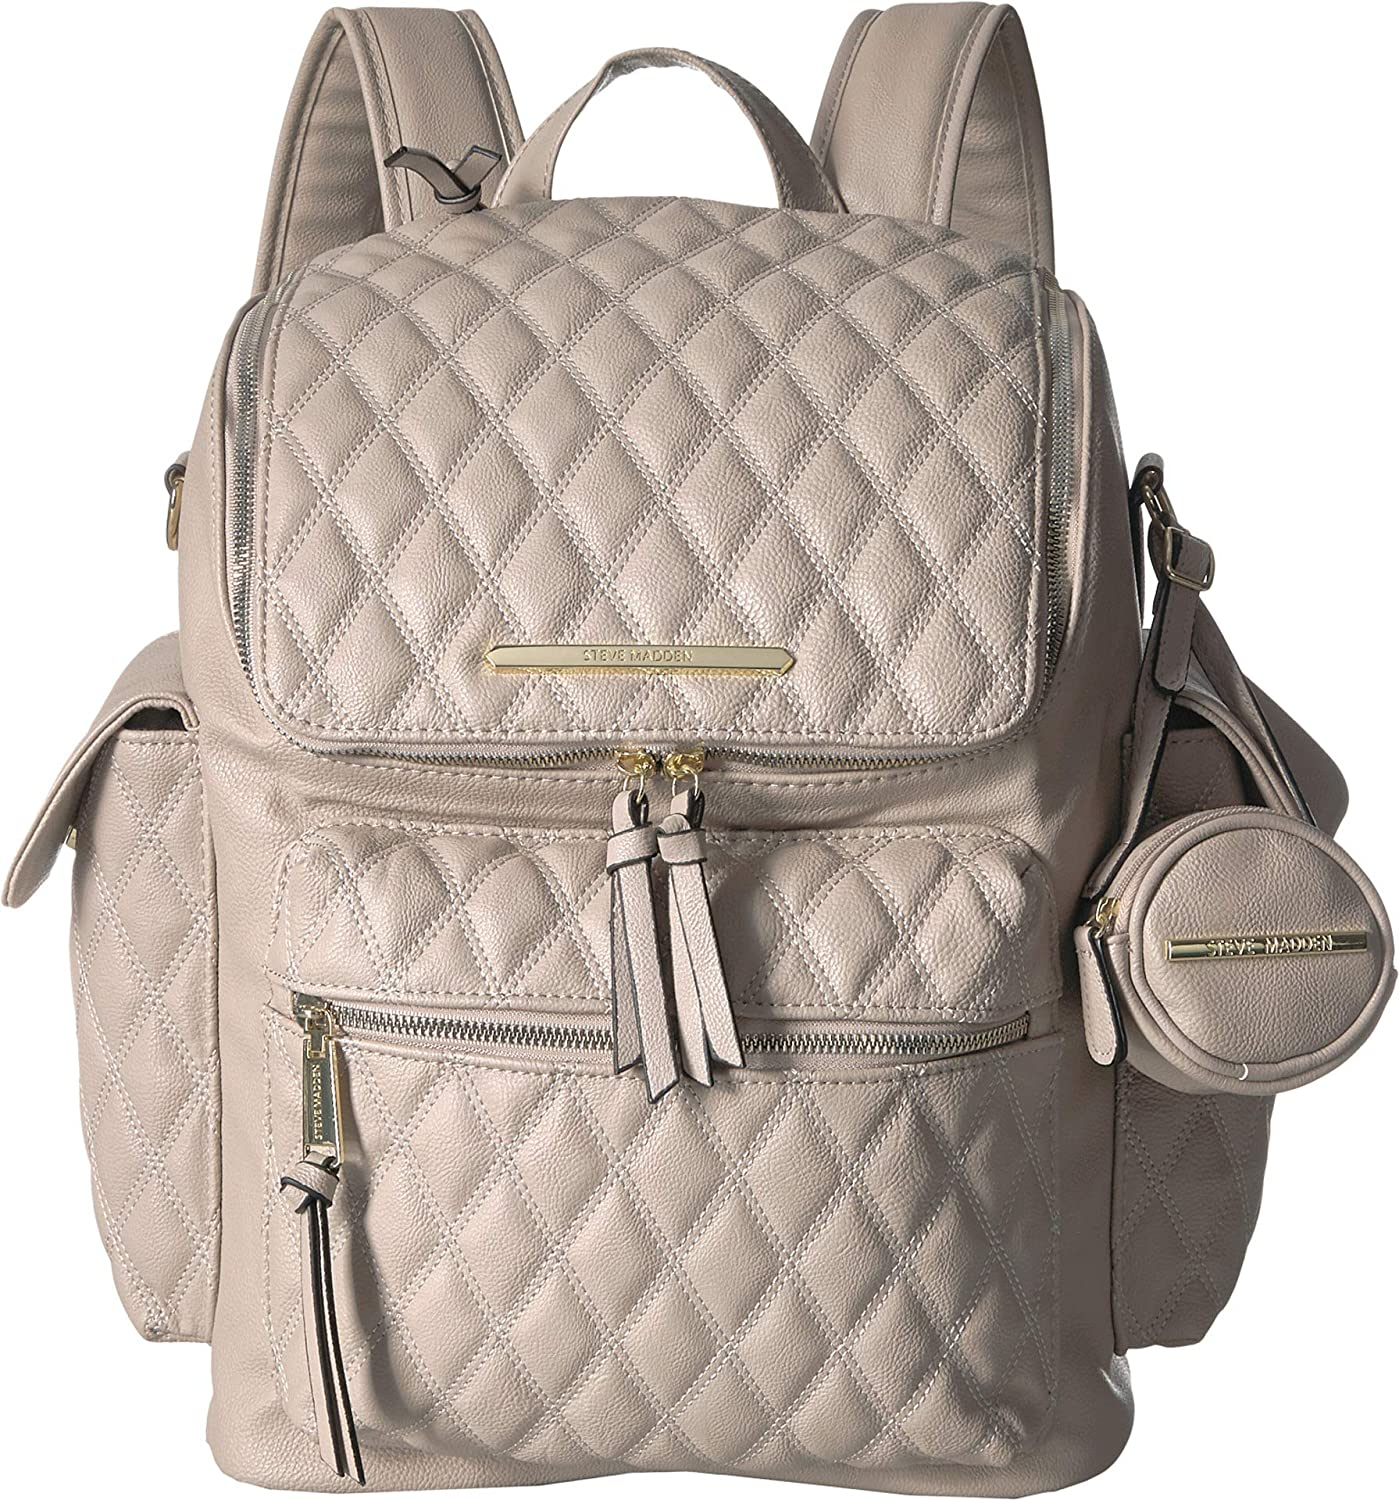 dae7dc924c Amazon.com: Steve Madden Women's Surry Backpack Bisque One Size: Clothing